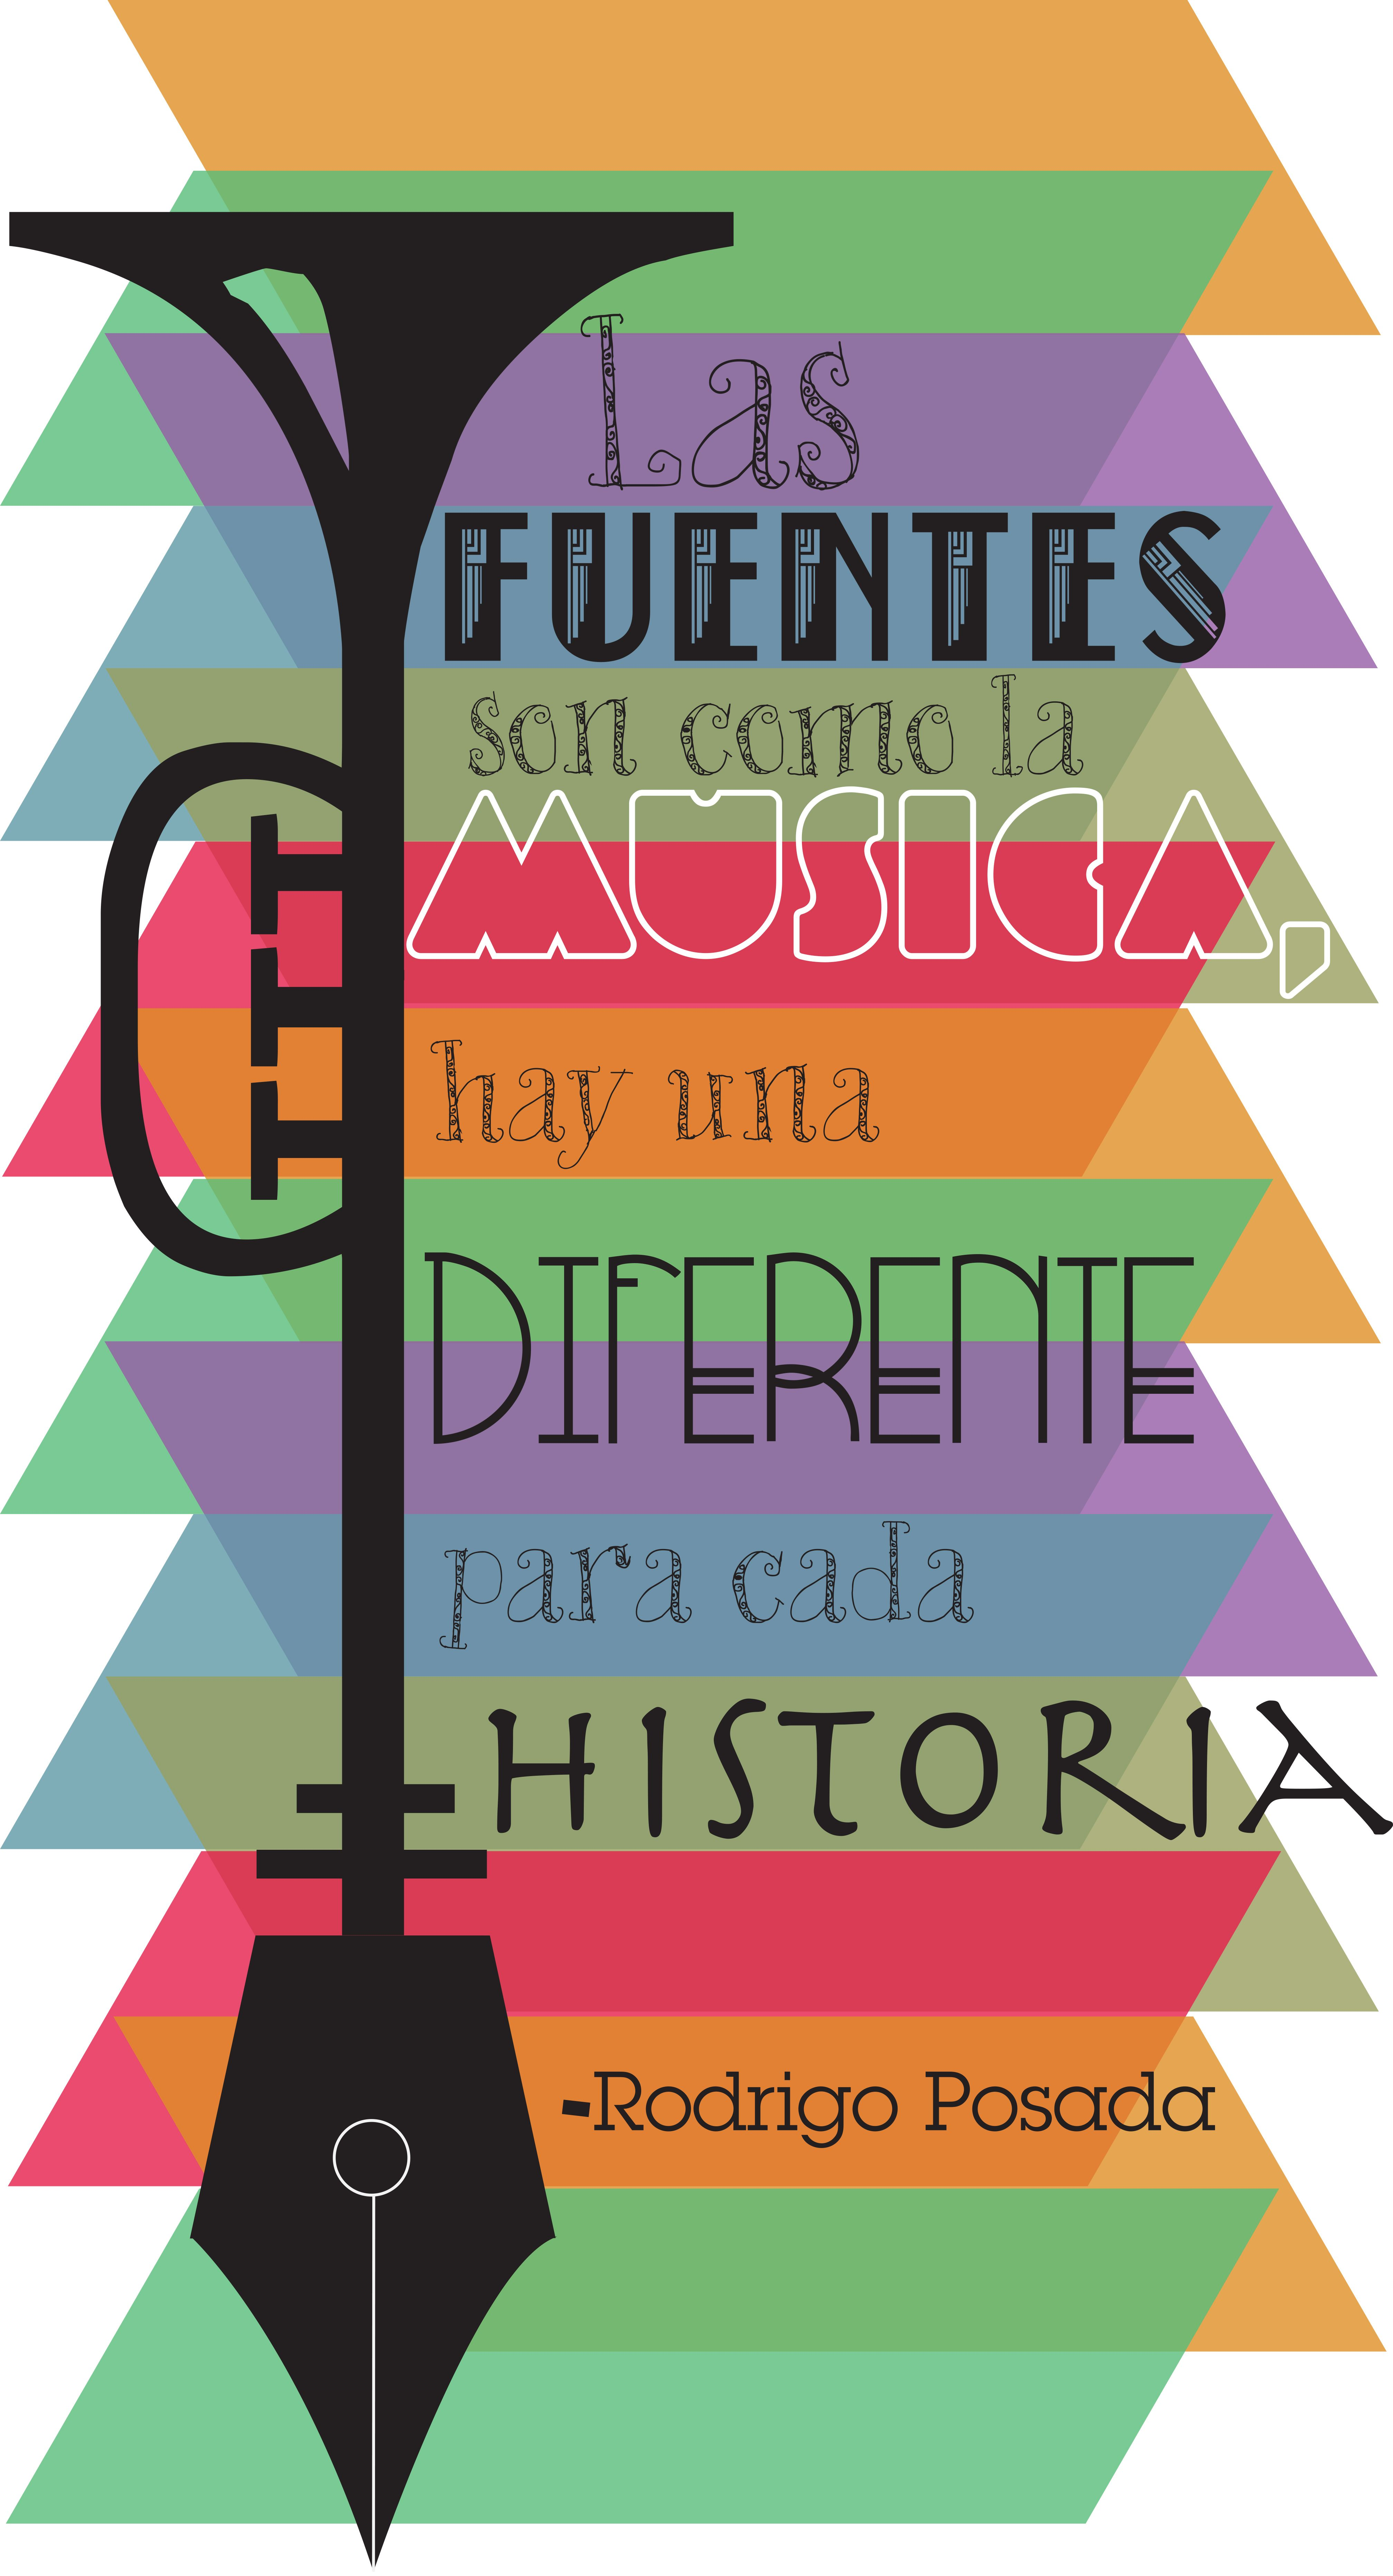 """""""Fonts are like music, there is a different one for each story"""" - Rodrigro Posada, Artwork by Juan M. Rojas"""